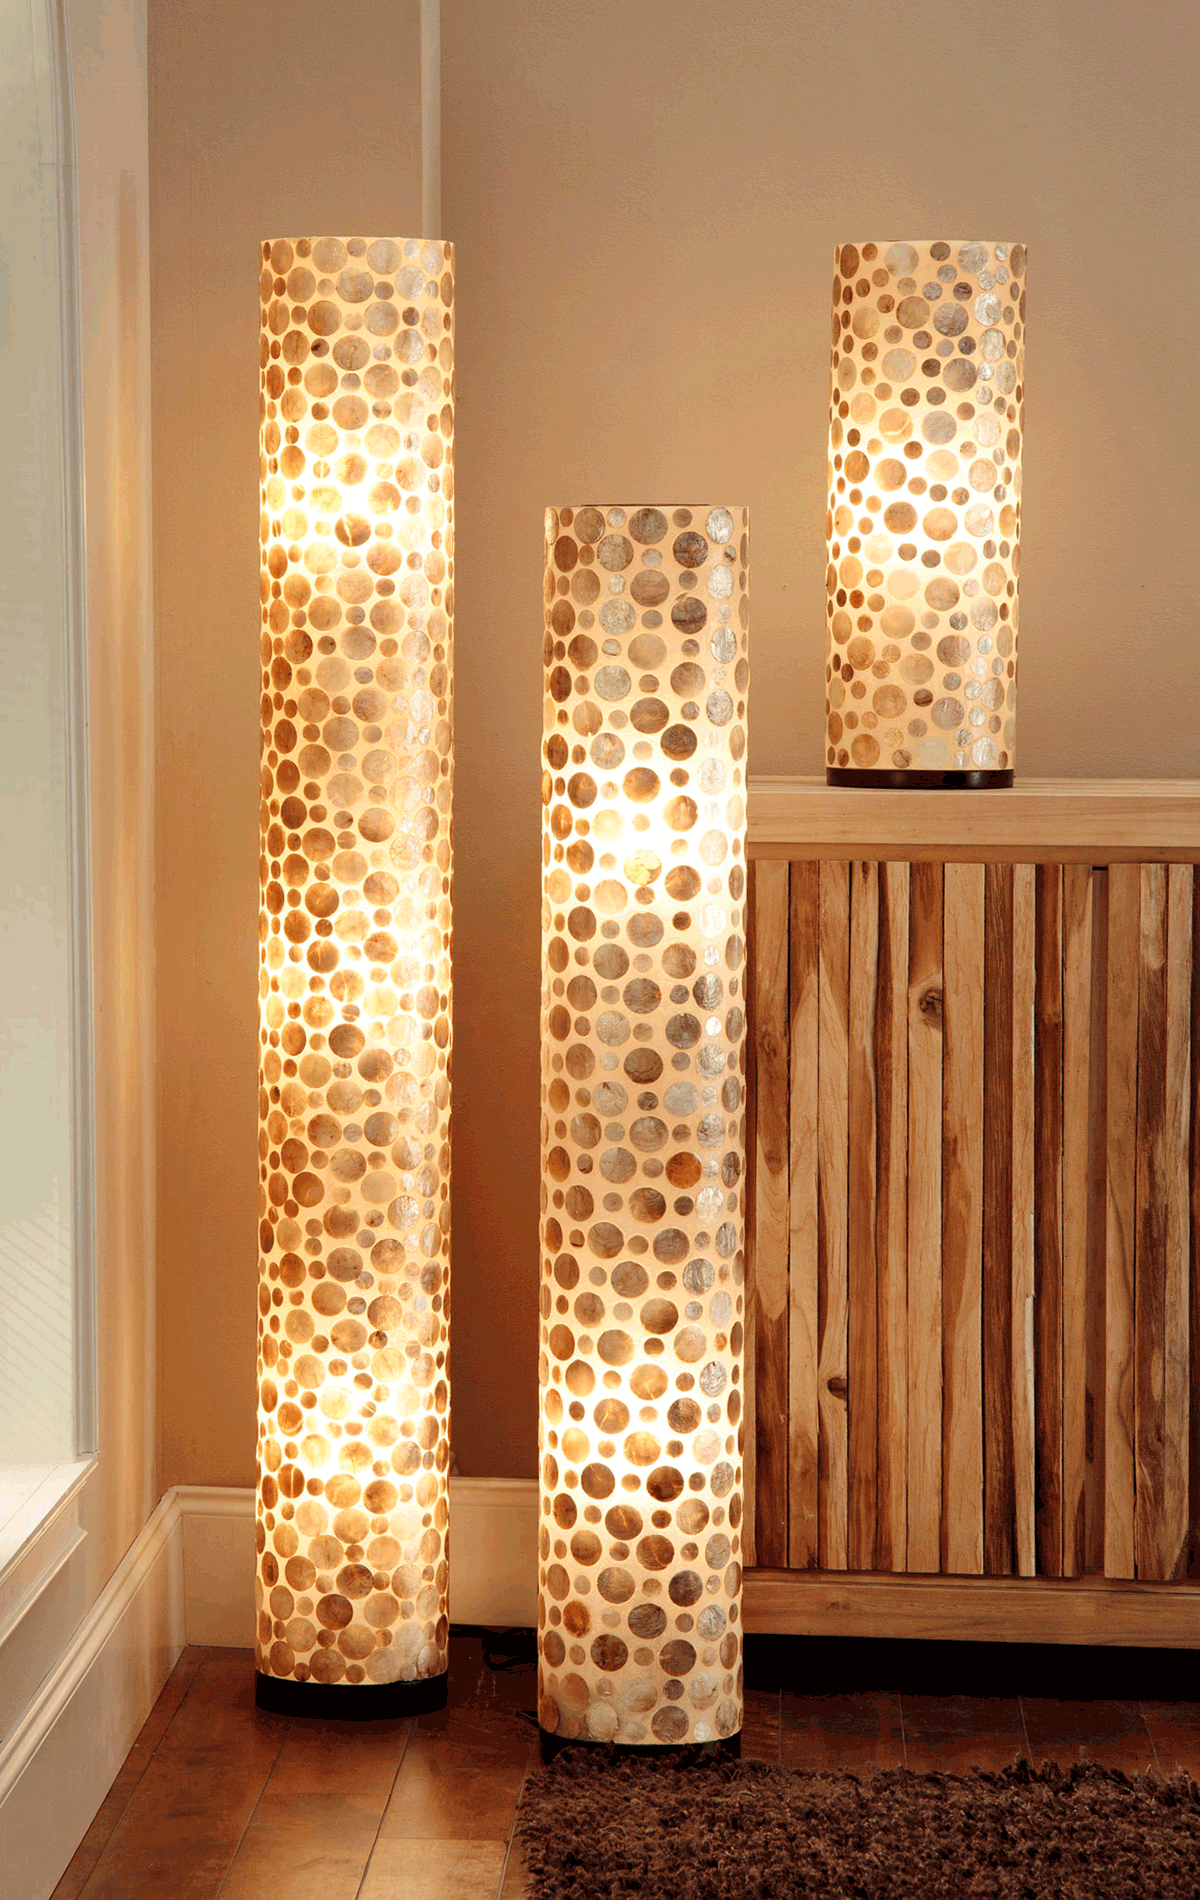 Bubbles Decorative Floor Round Lamp